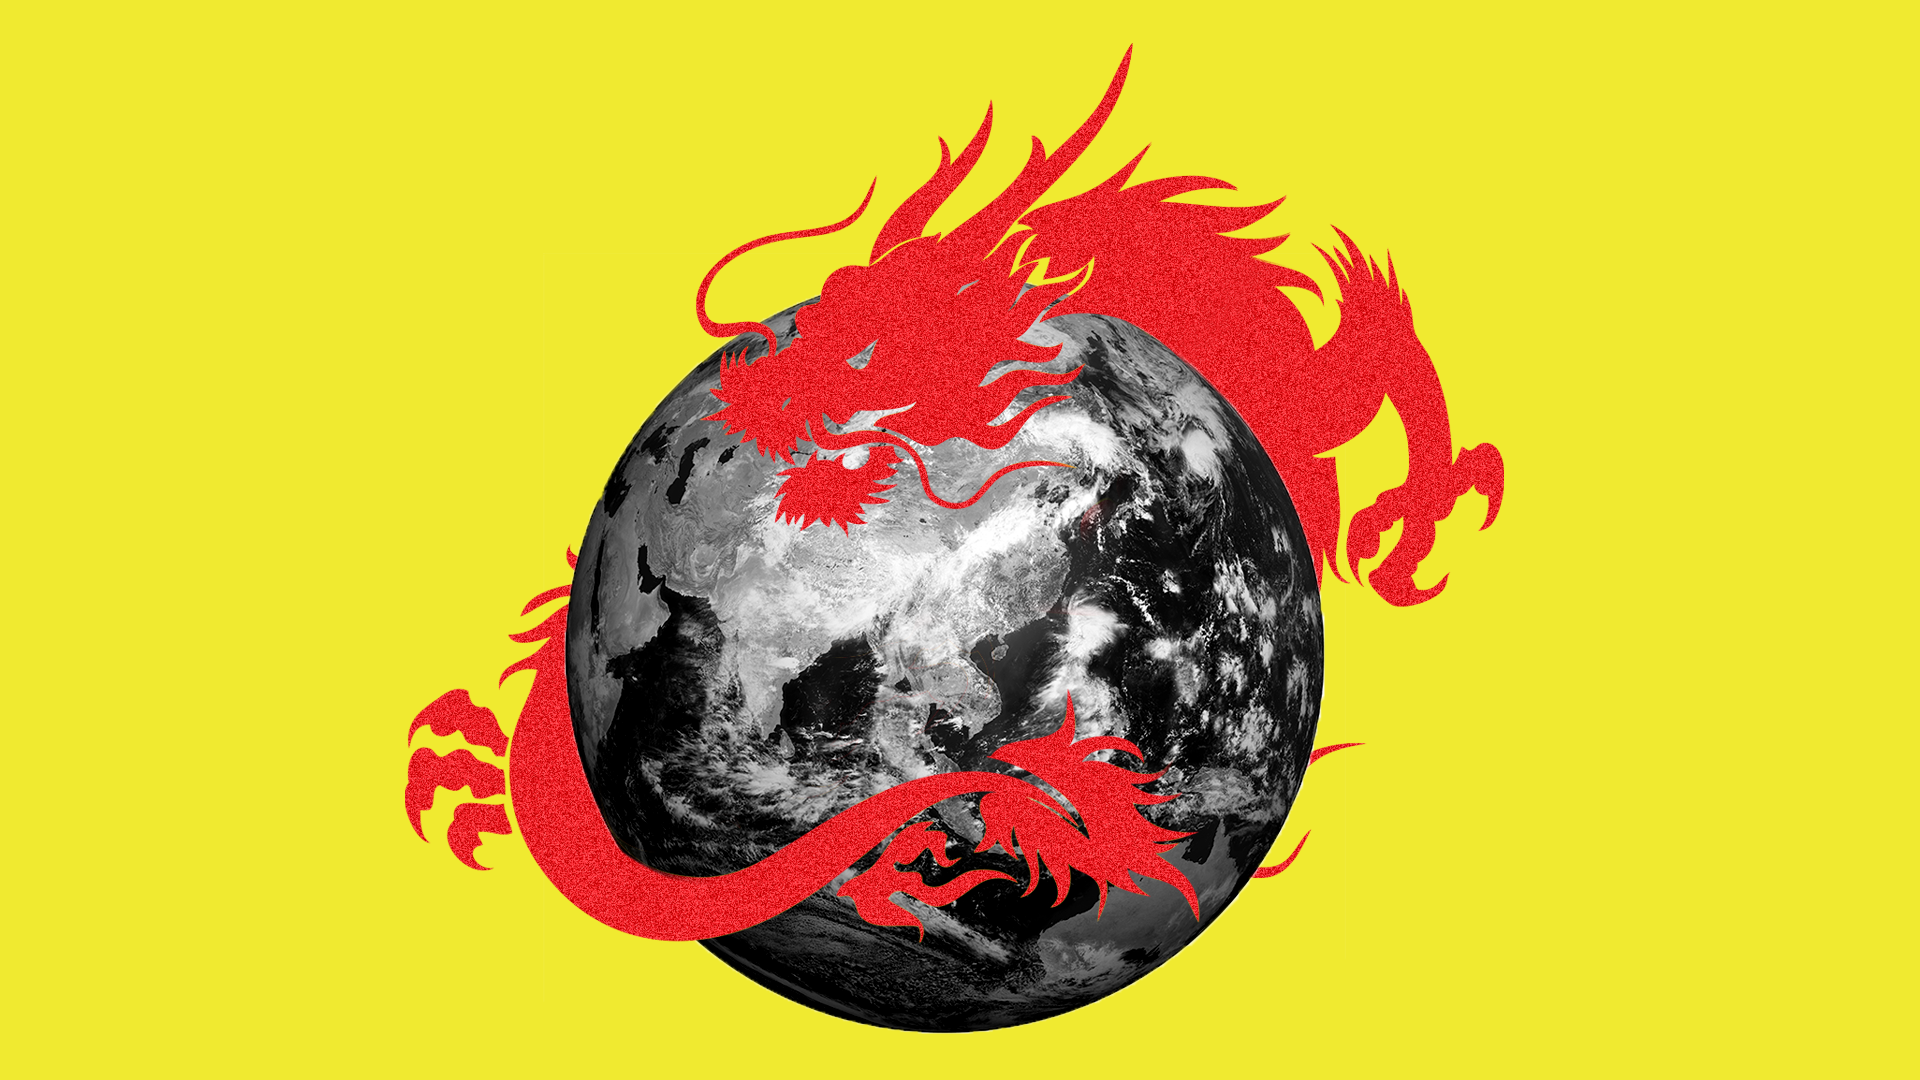 An illustration of a red dragon around a globe.